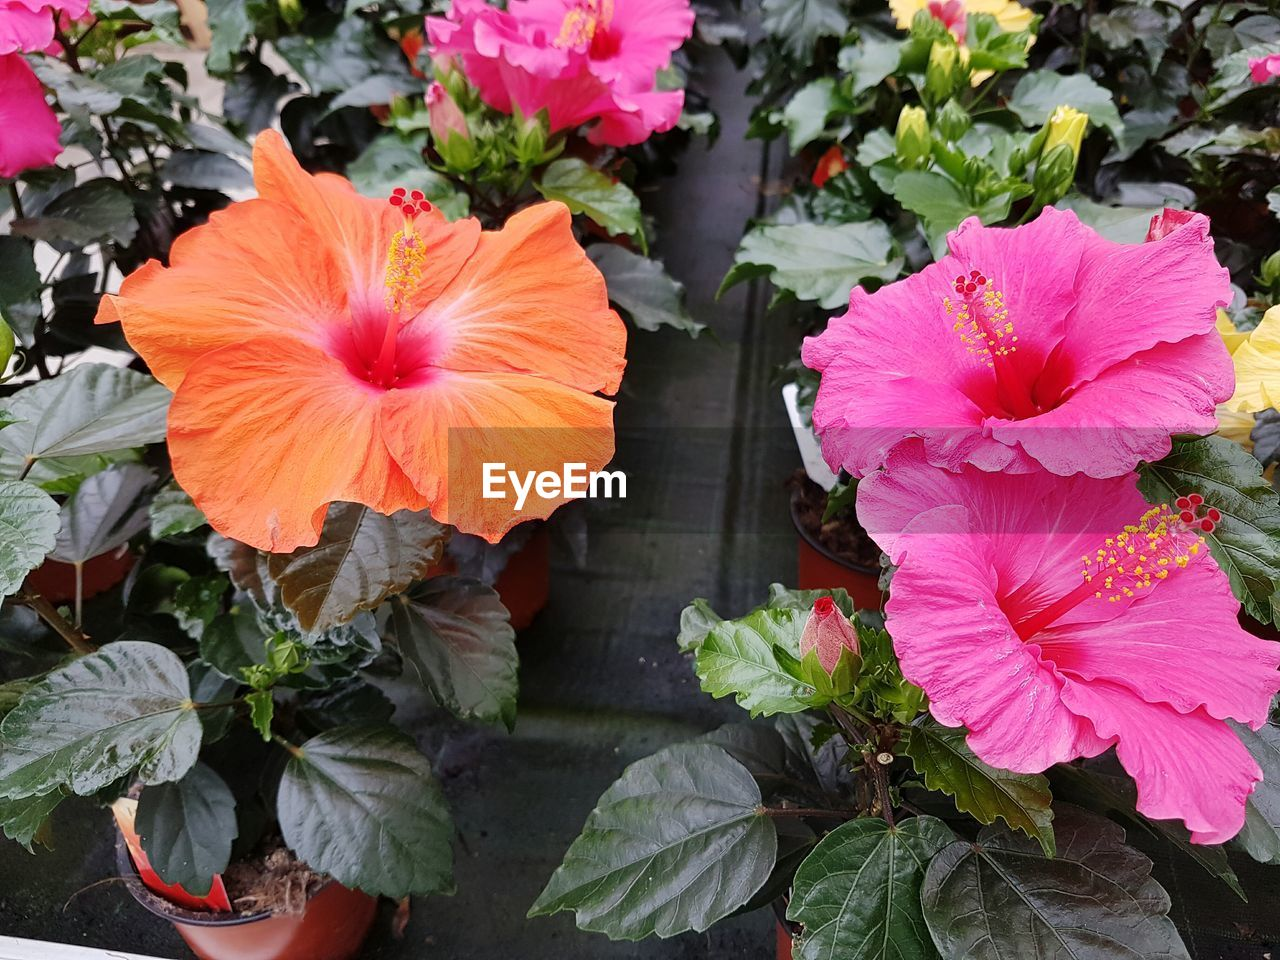 flower, petal, growth, flower head, fragility, nature, plant, beauty in nature, freshness, leaf, outdoors, blooming, day, no people, close-up, hibiscus, petunia